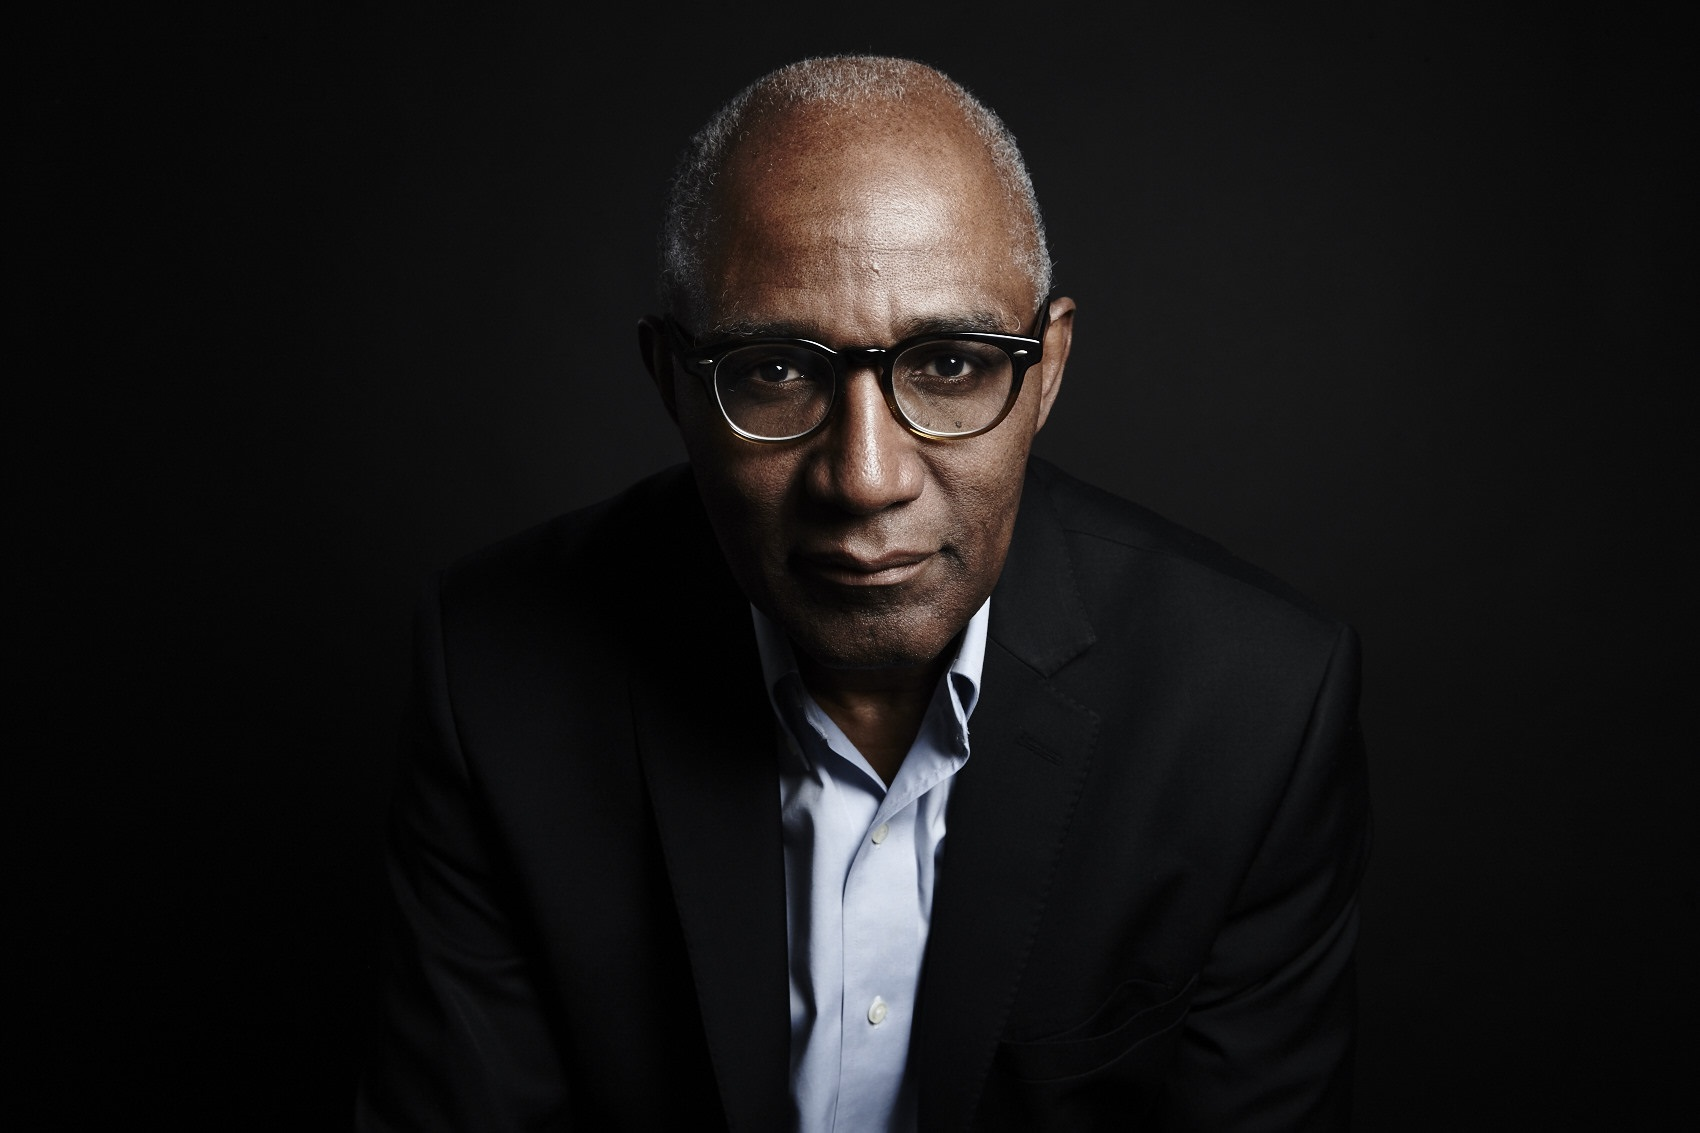 STV – Trevor Phillips on Things We Won't Say About Race That Are True